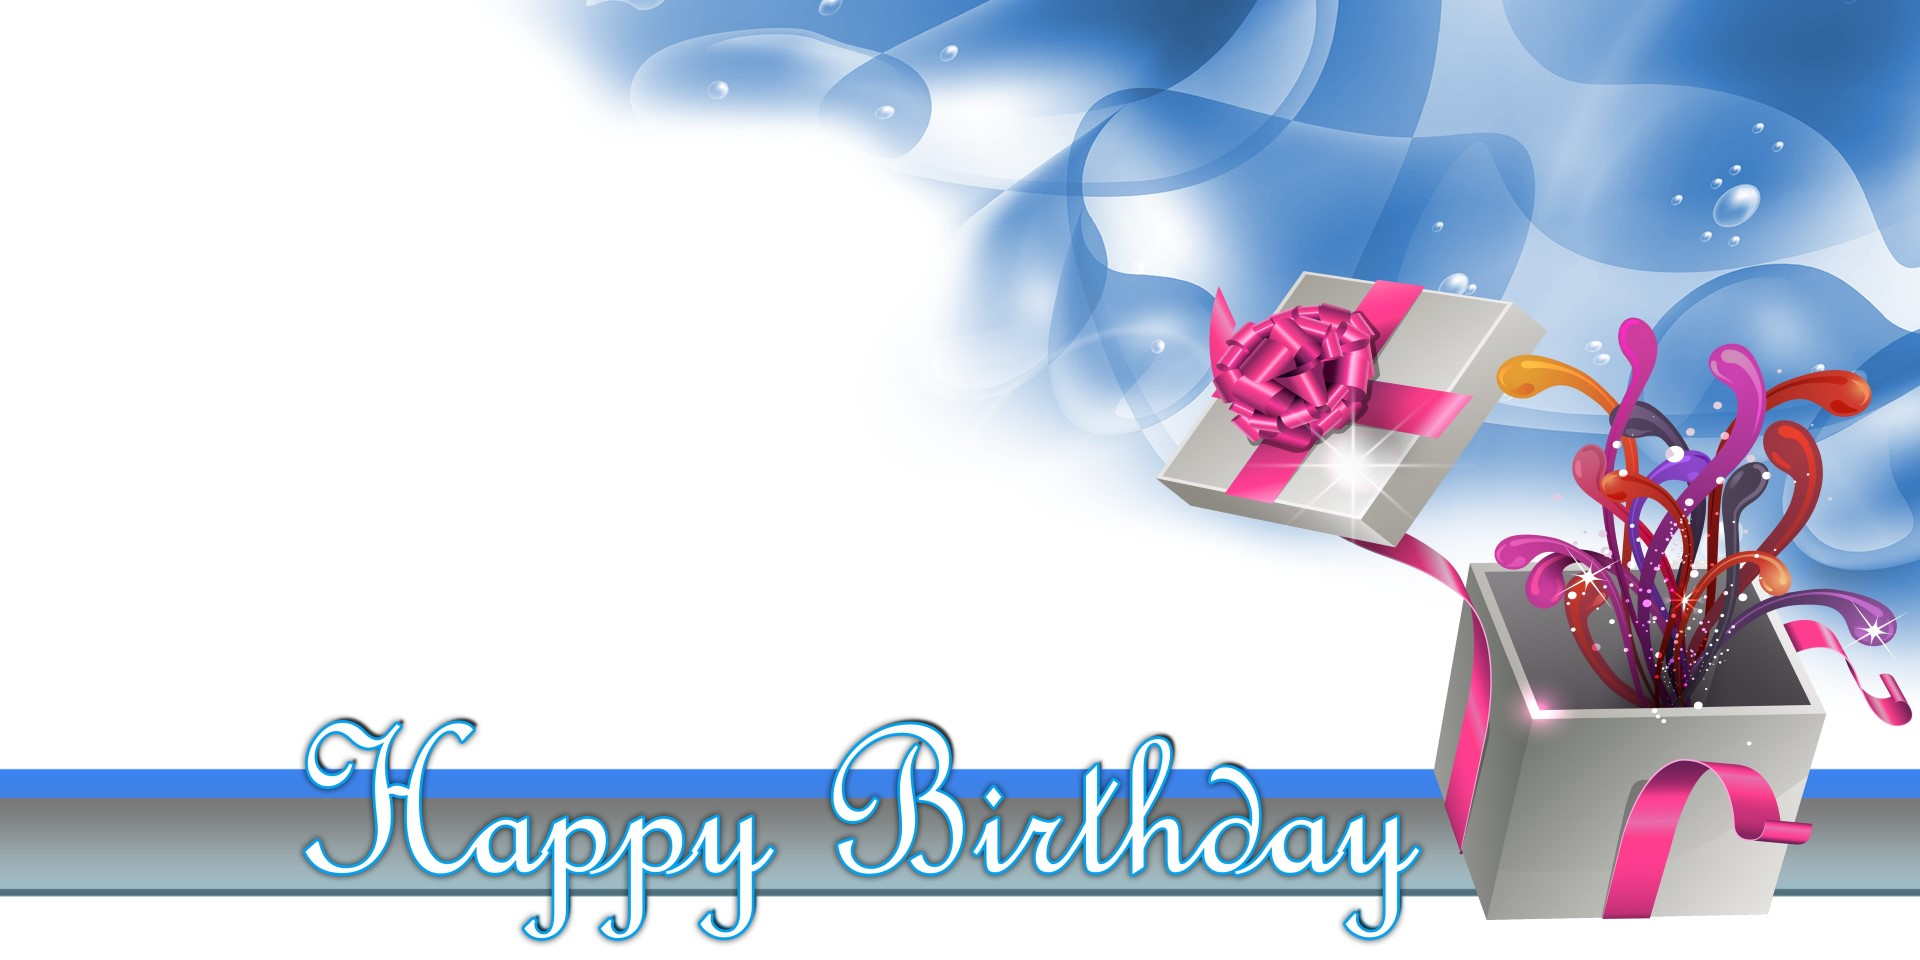 birthday banner design vatoz atozdevelopment co